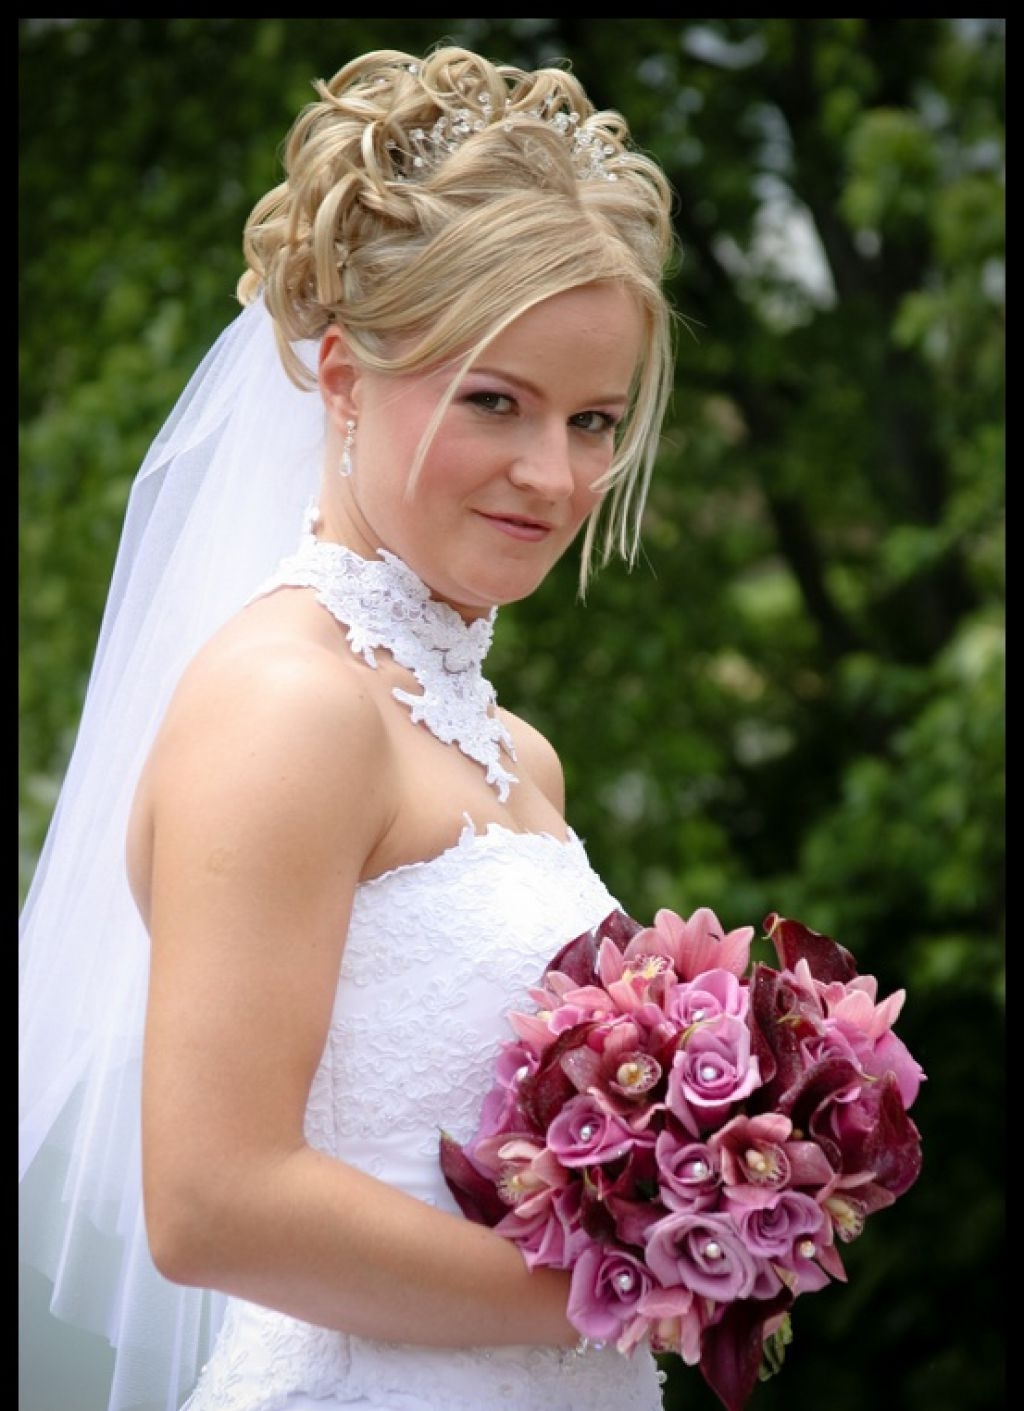 Half Up Wedding Hairstyles For Long Hair With Veil Within Well Known Wedding Hairstyles For Long Hair Up With Veil (View 6 of 15)